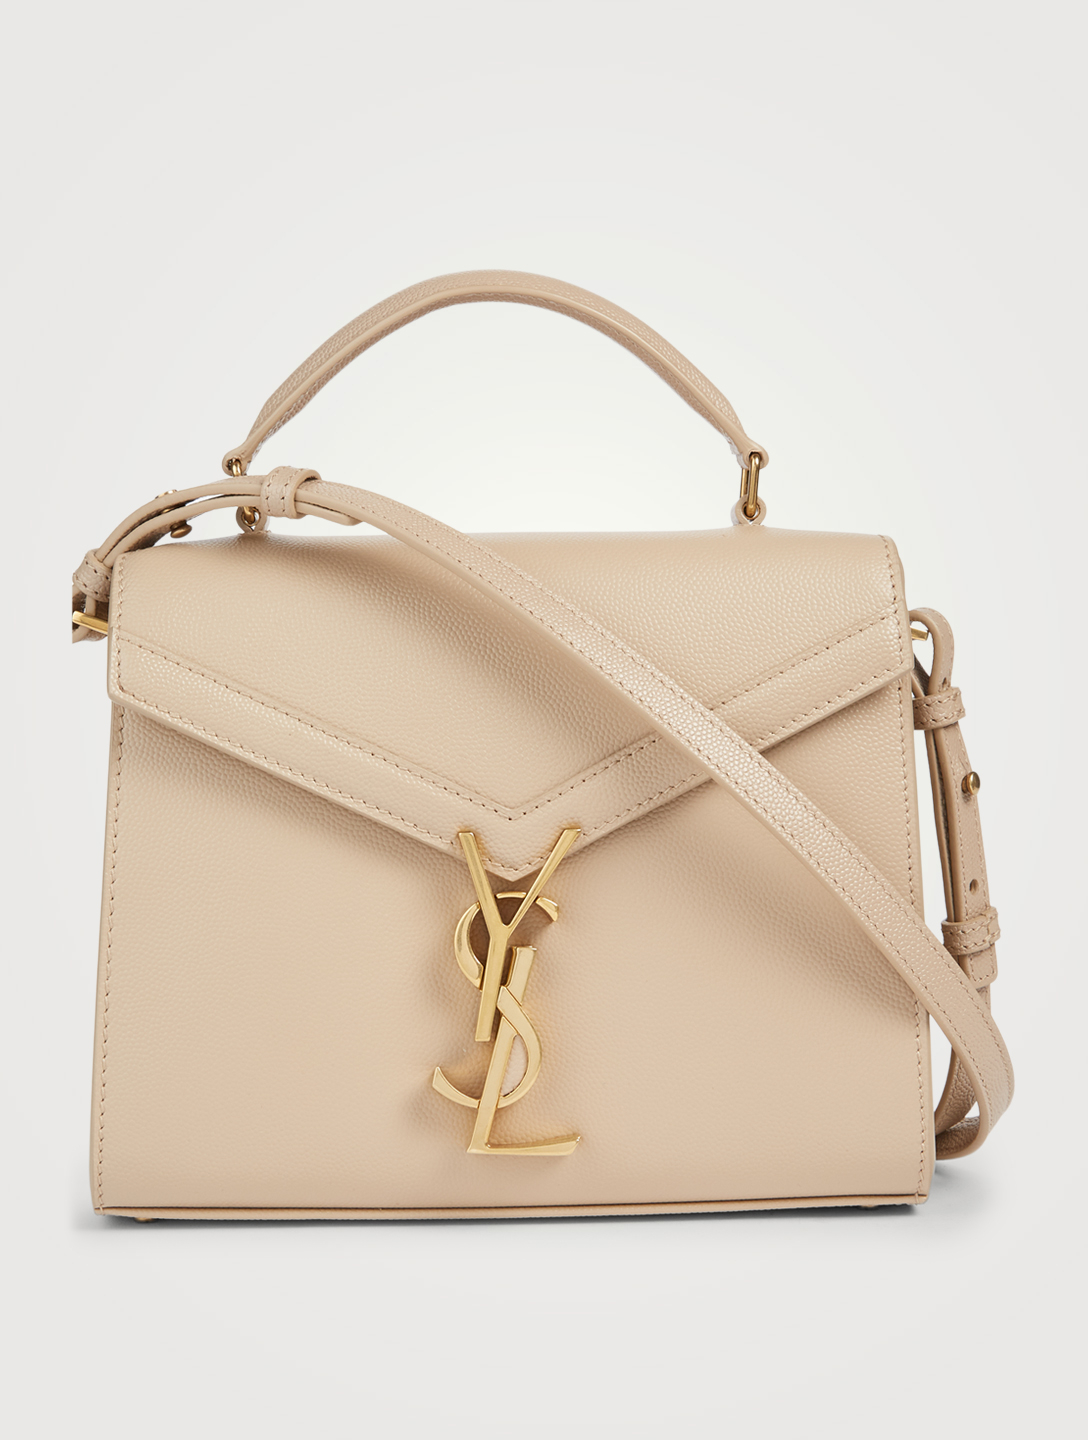 SAINT LAURENT Mini Cassandra YSL Monogram Leather Top Handle Bag Women's Beige